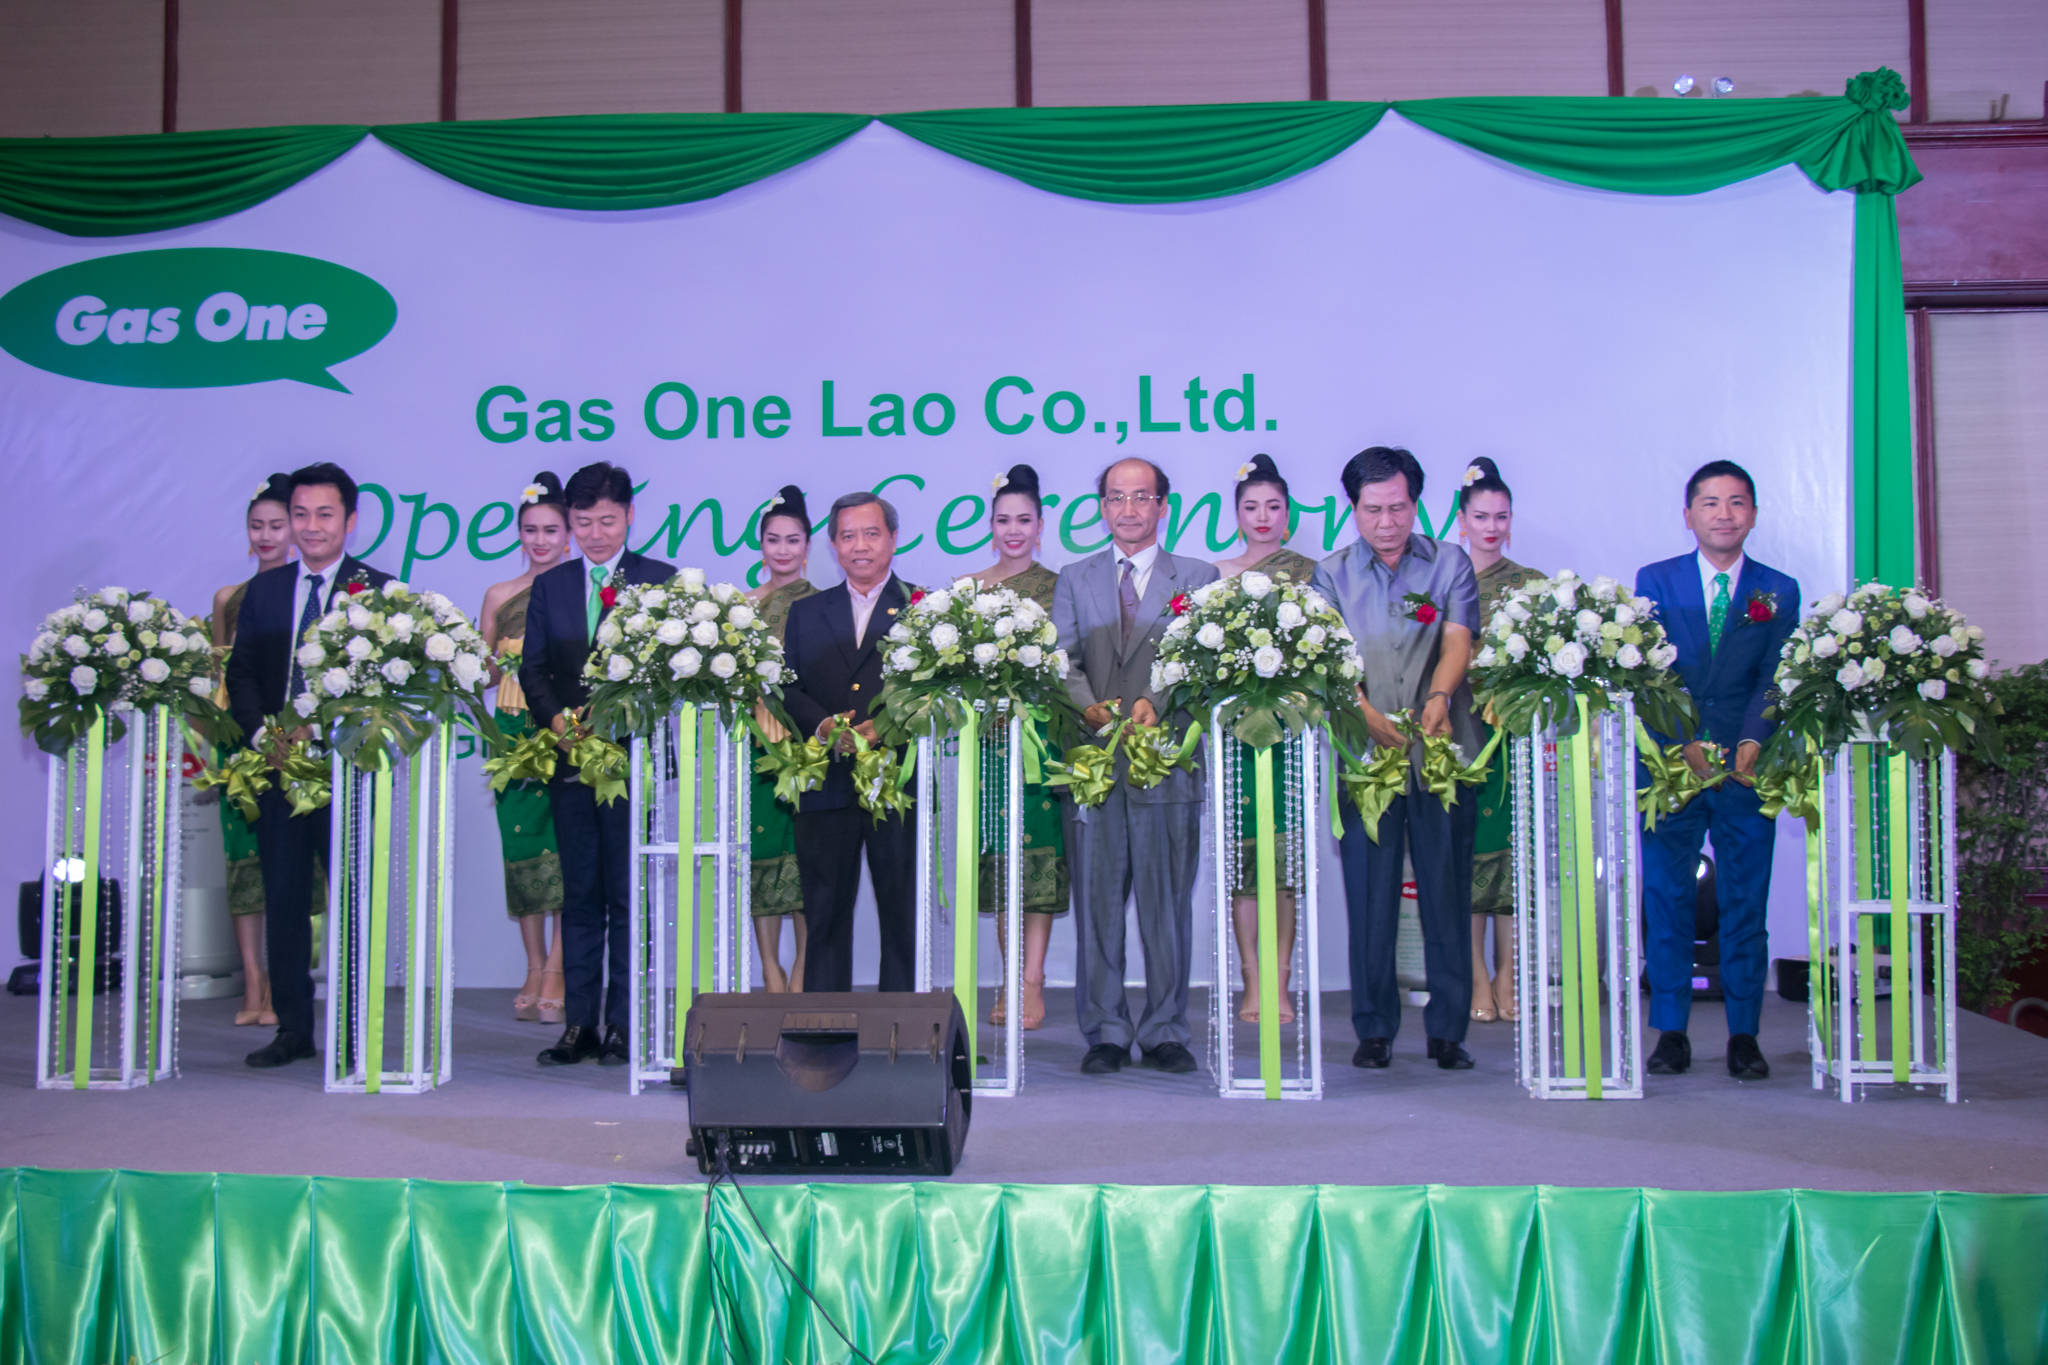 Grand Opening Ceremony of Gas One Lao Co., Ltd.